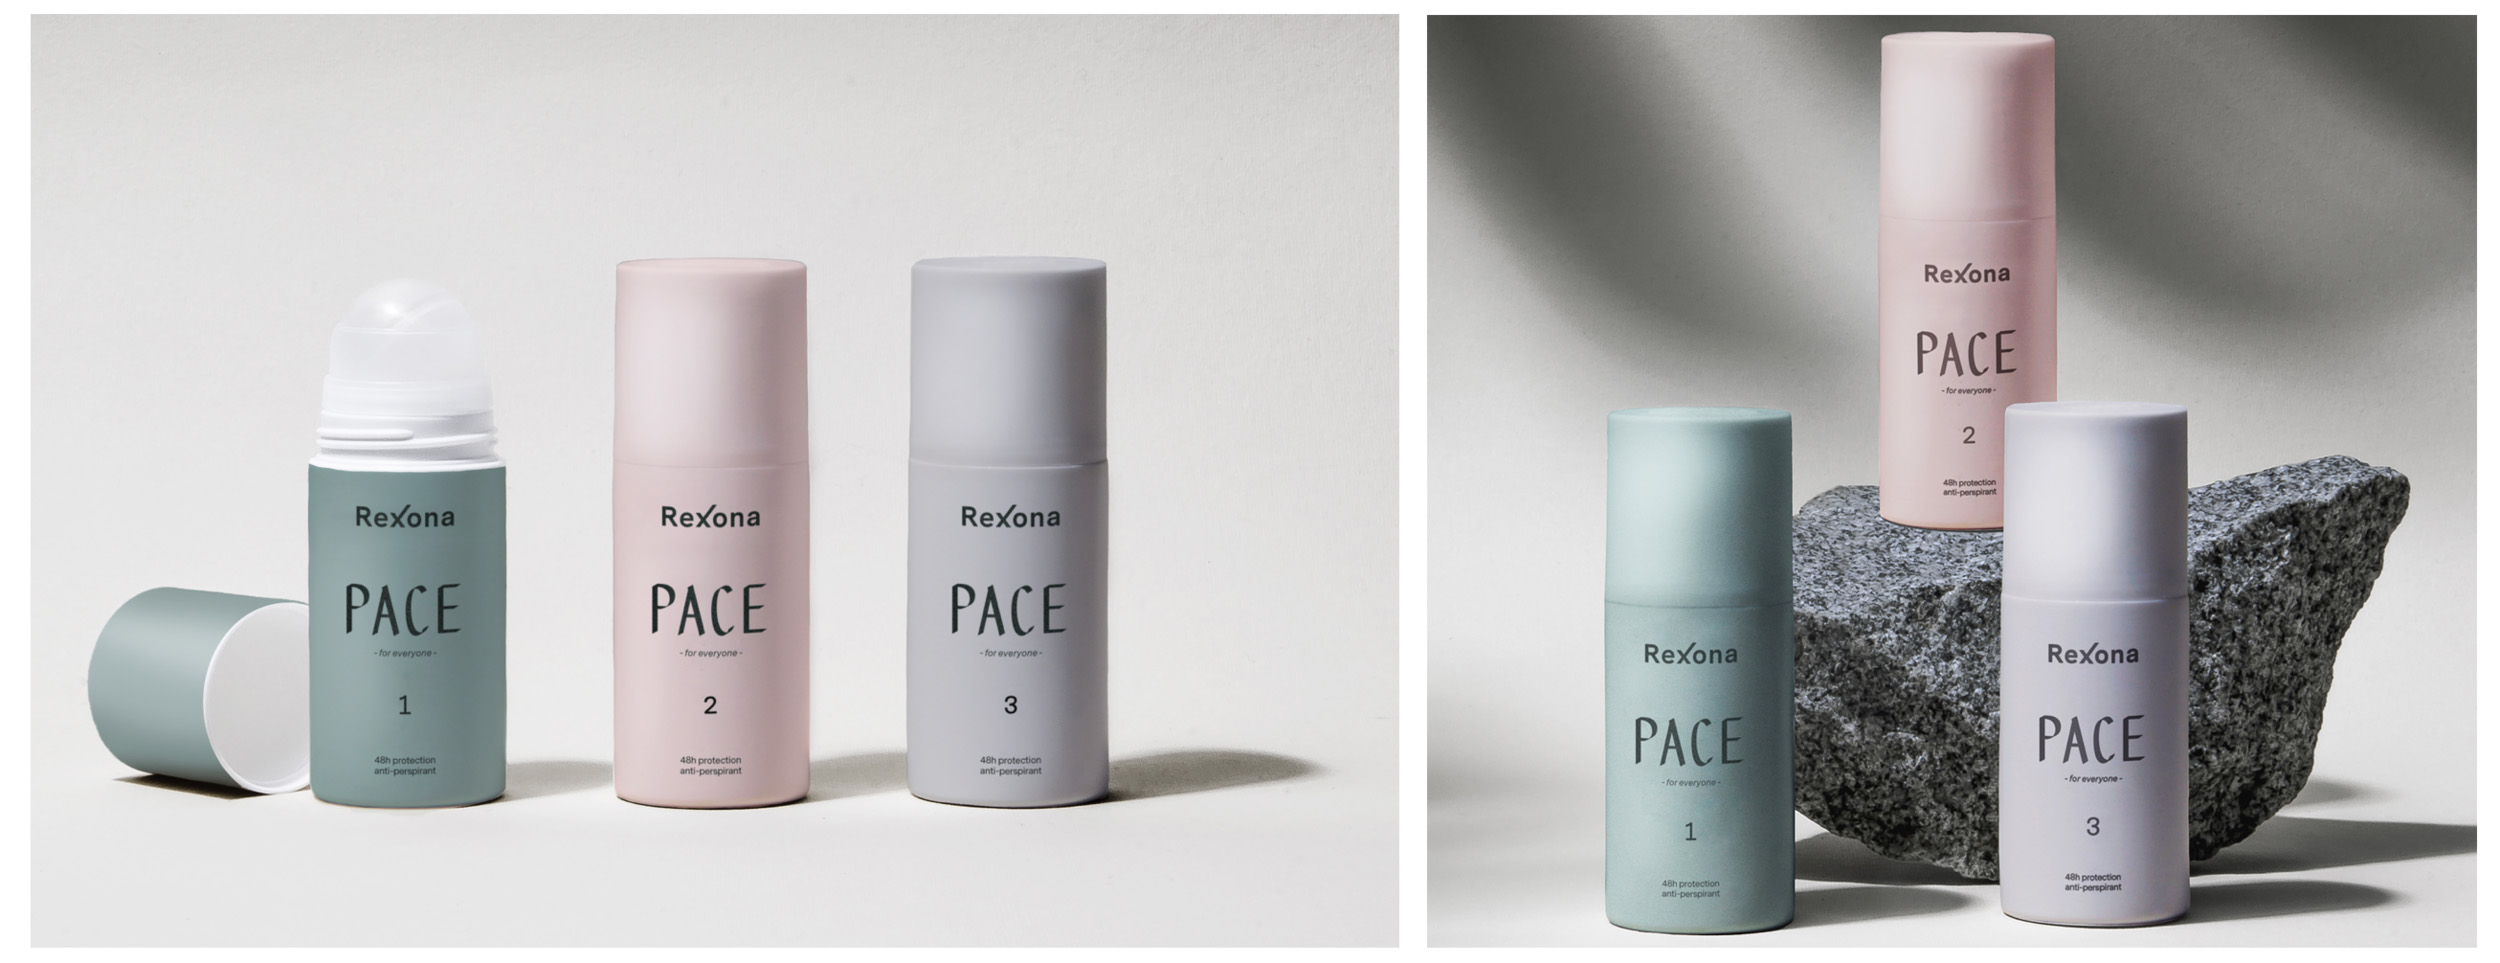 Product+photography+Rexona+Pace.jpg